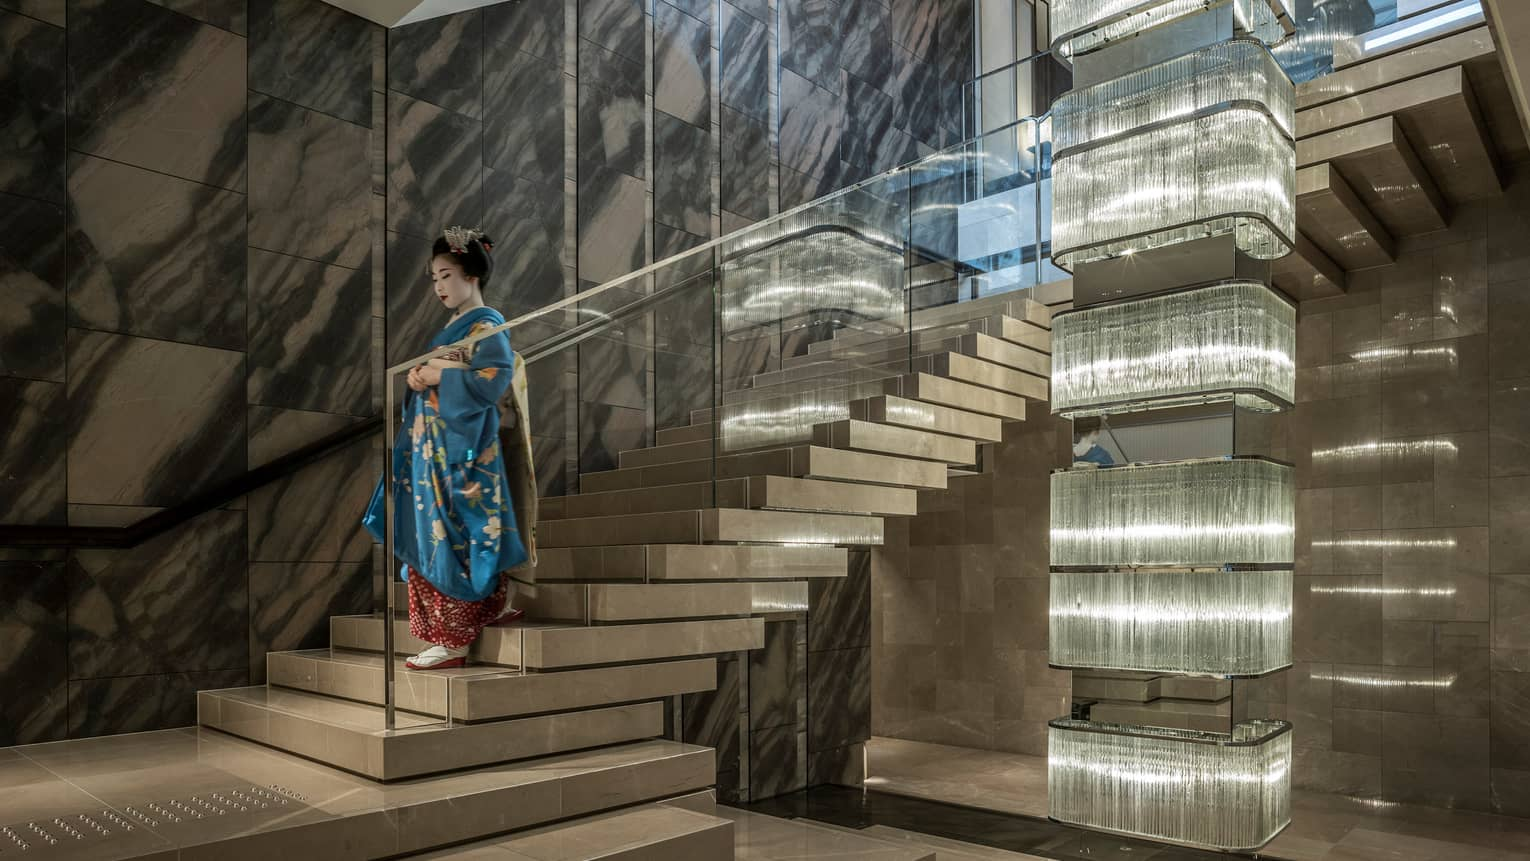 Geisha wearing traditional kimono, make-up descends down marble and glass staircase